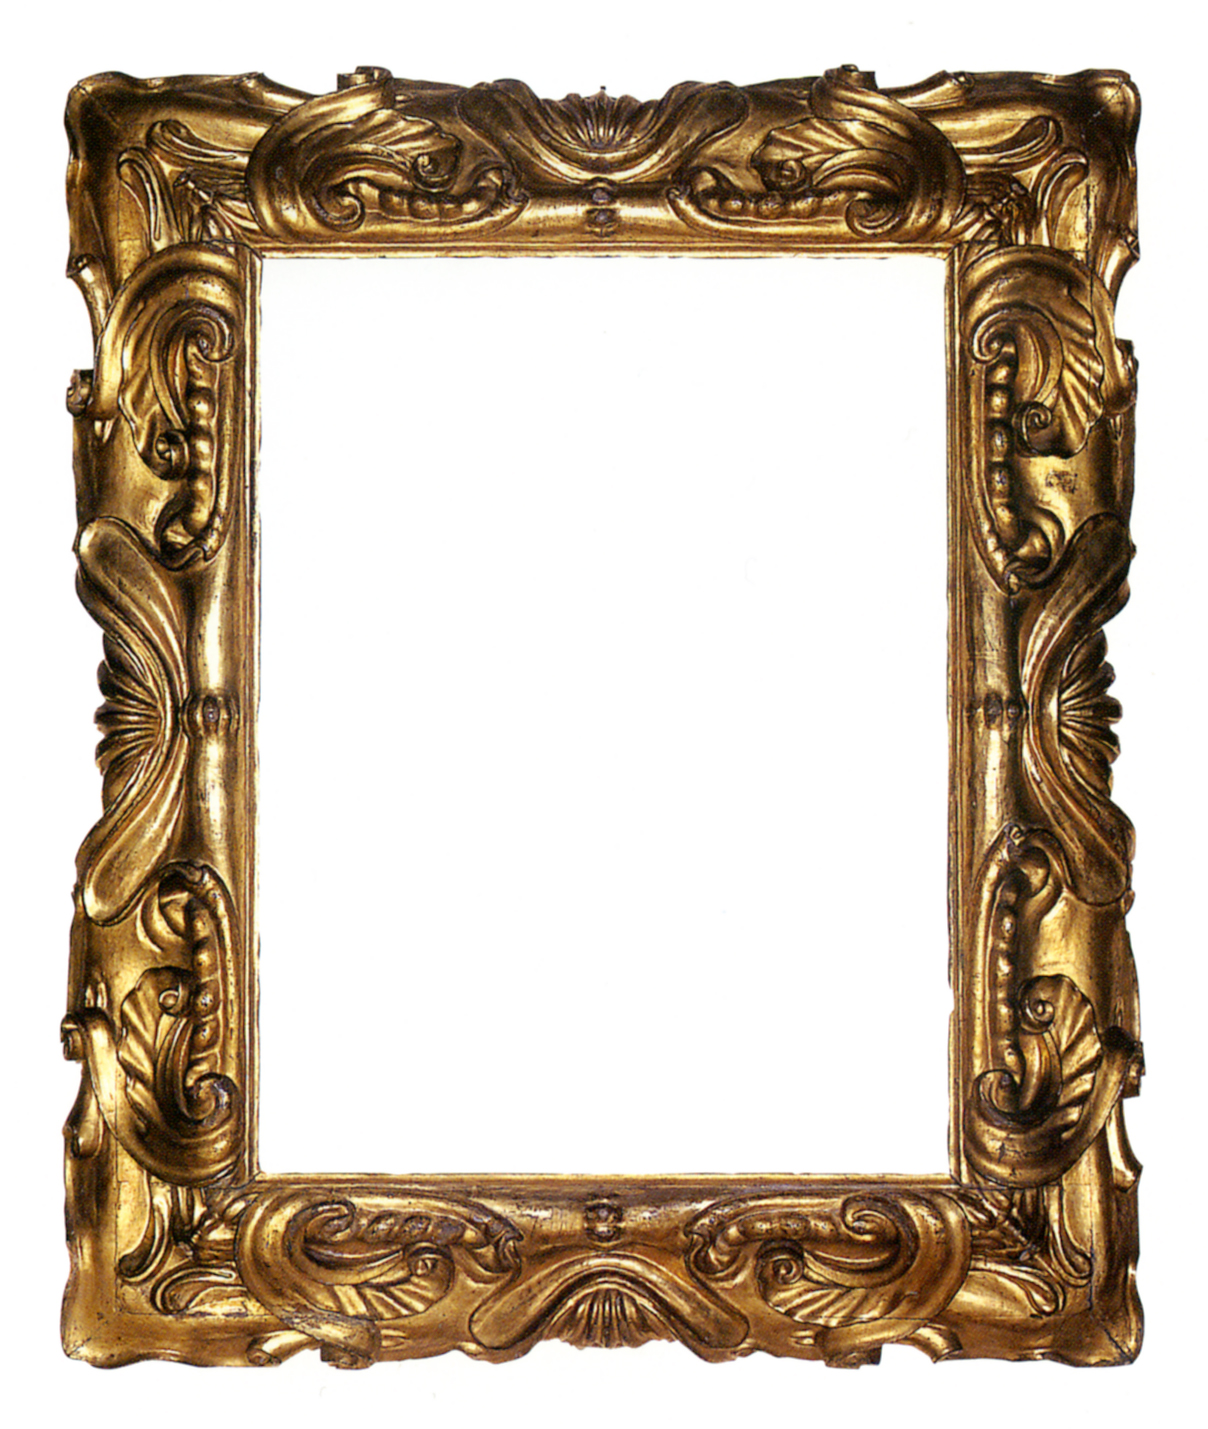 Free Online Picture Frames